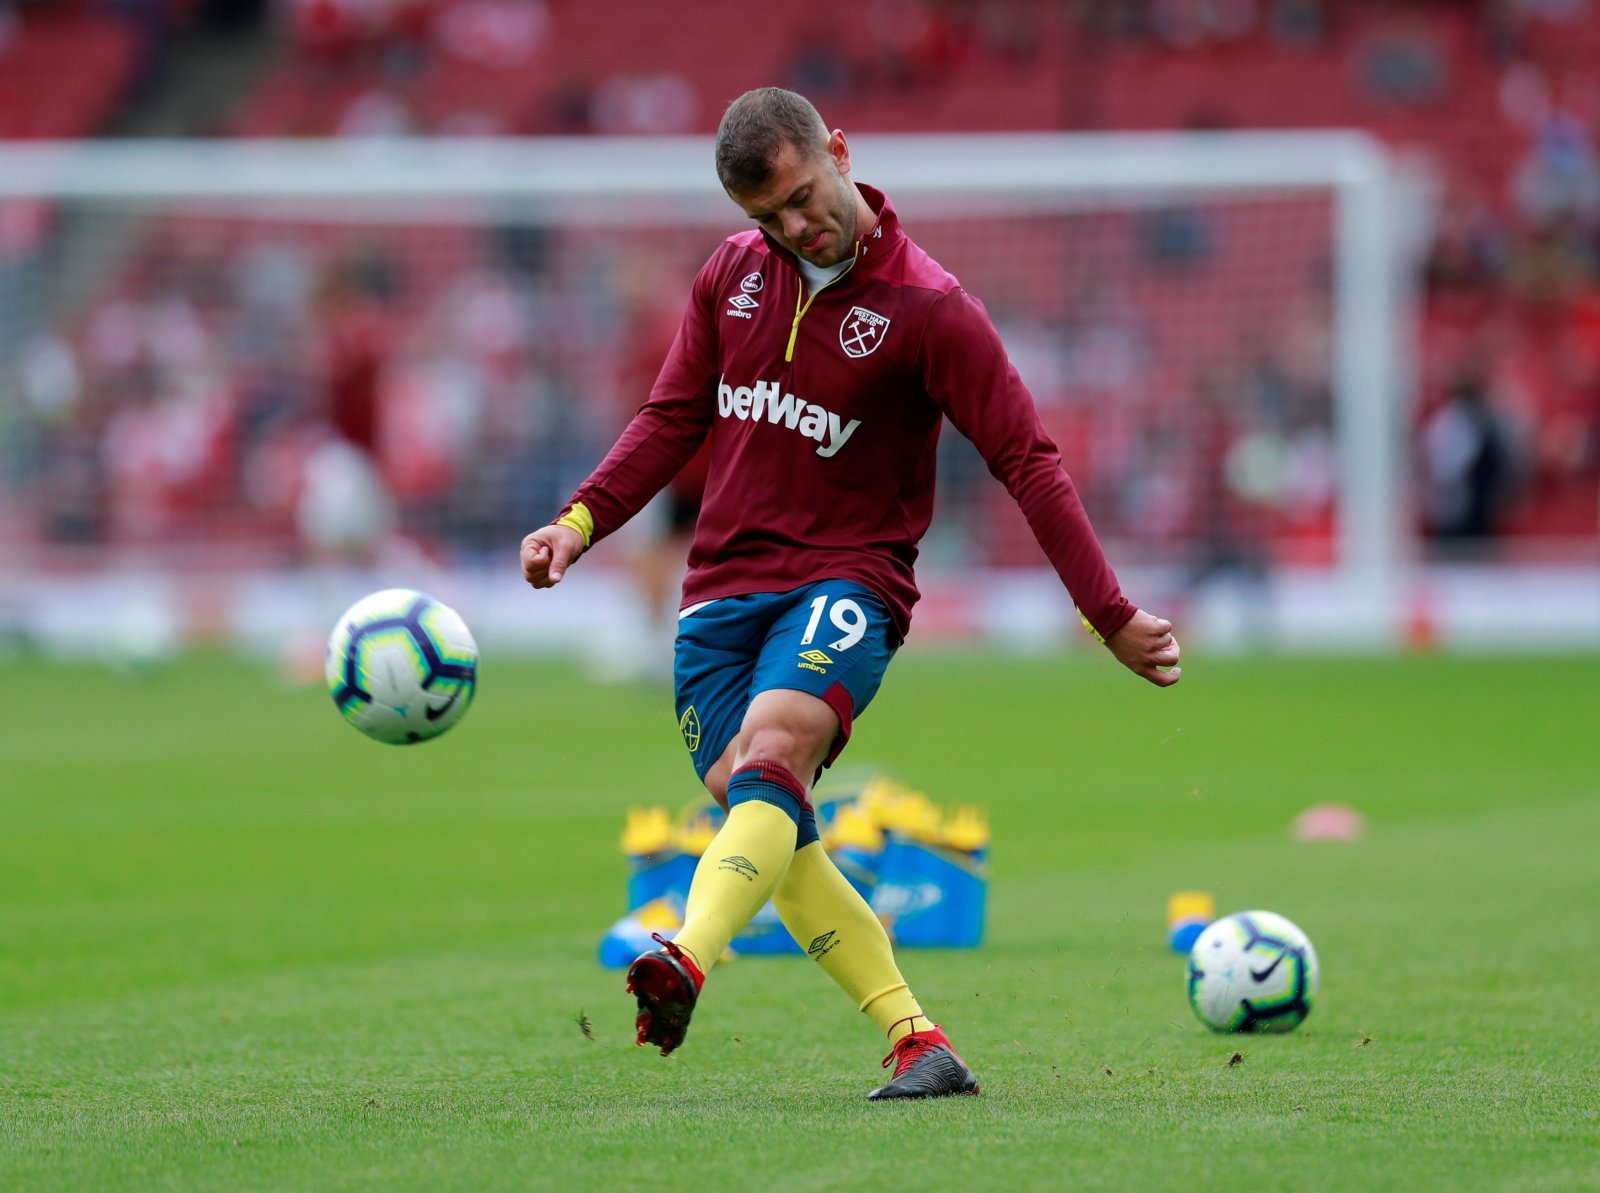 Jack Wilshere being monitored ahead of Everton trip